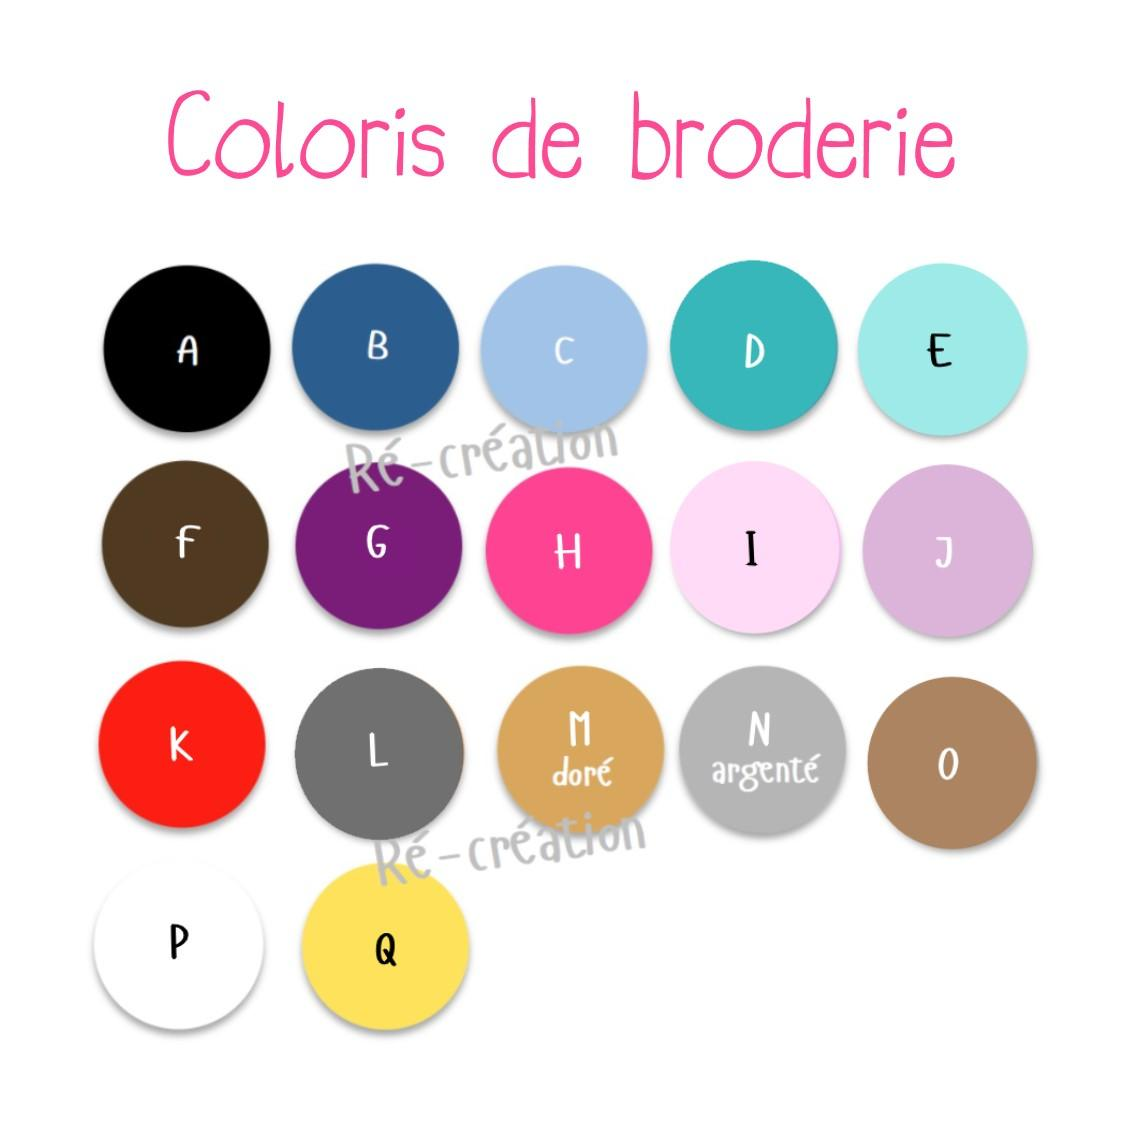 Coloris broderie